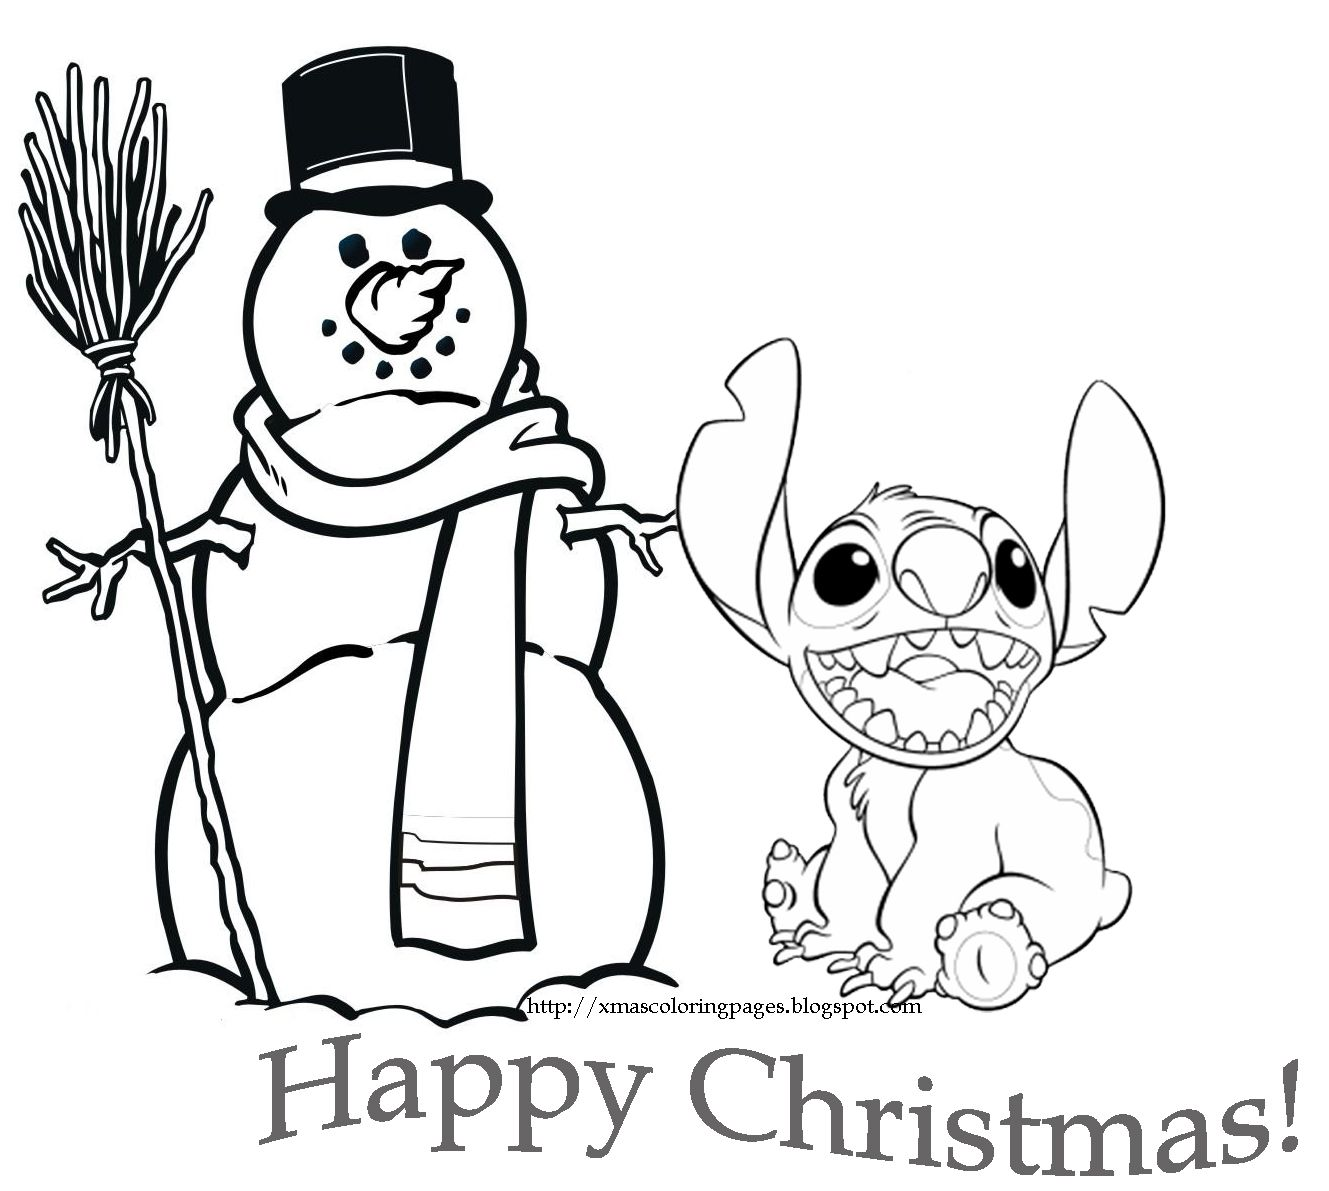 Cute Christmas Coloring Pages Printable With Pin By Jimmy Nail On Pinterest